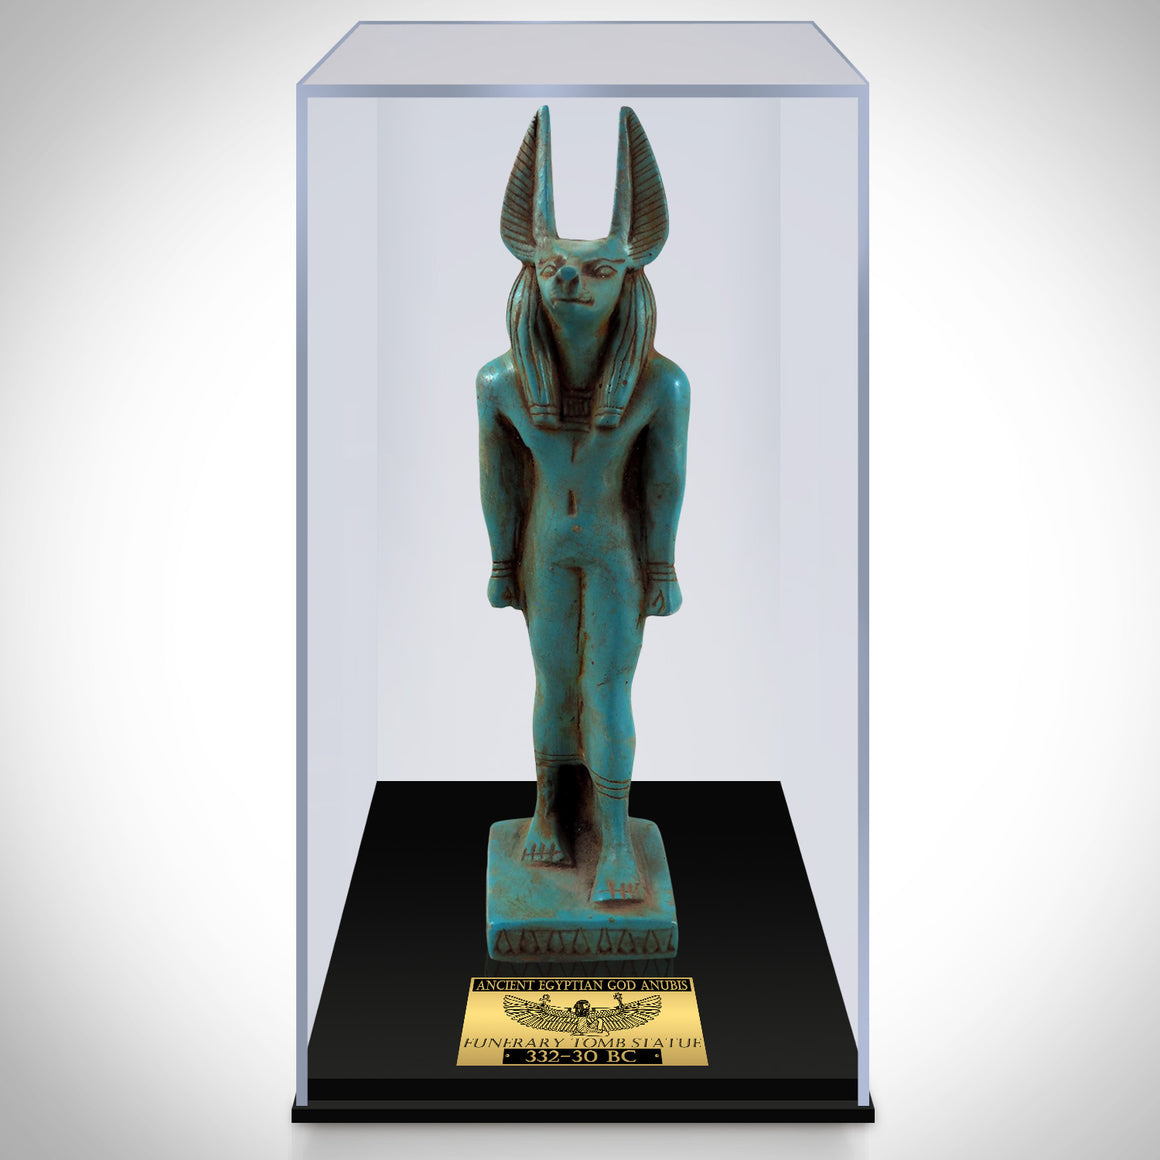 Authentic Anubis Painted Tomb Statue Museum Display